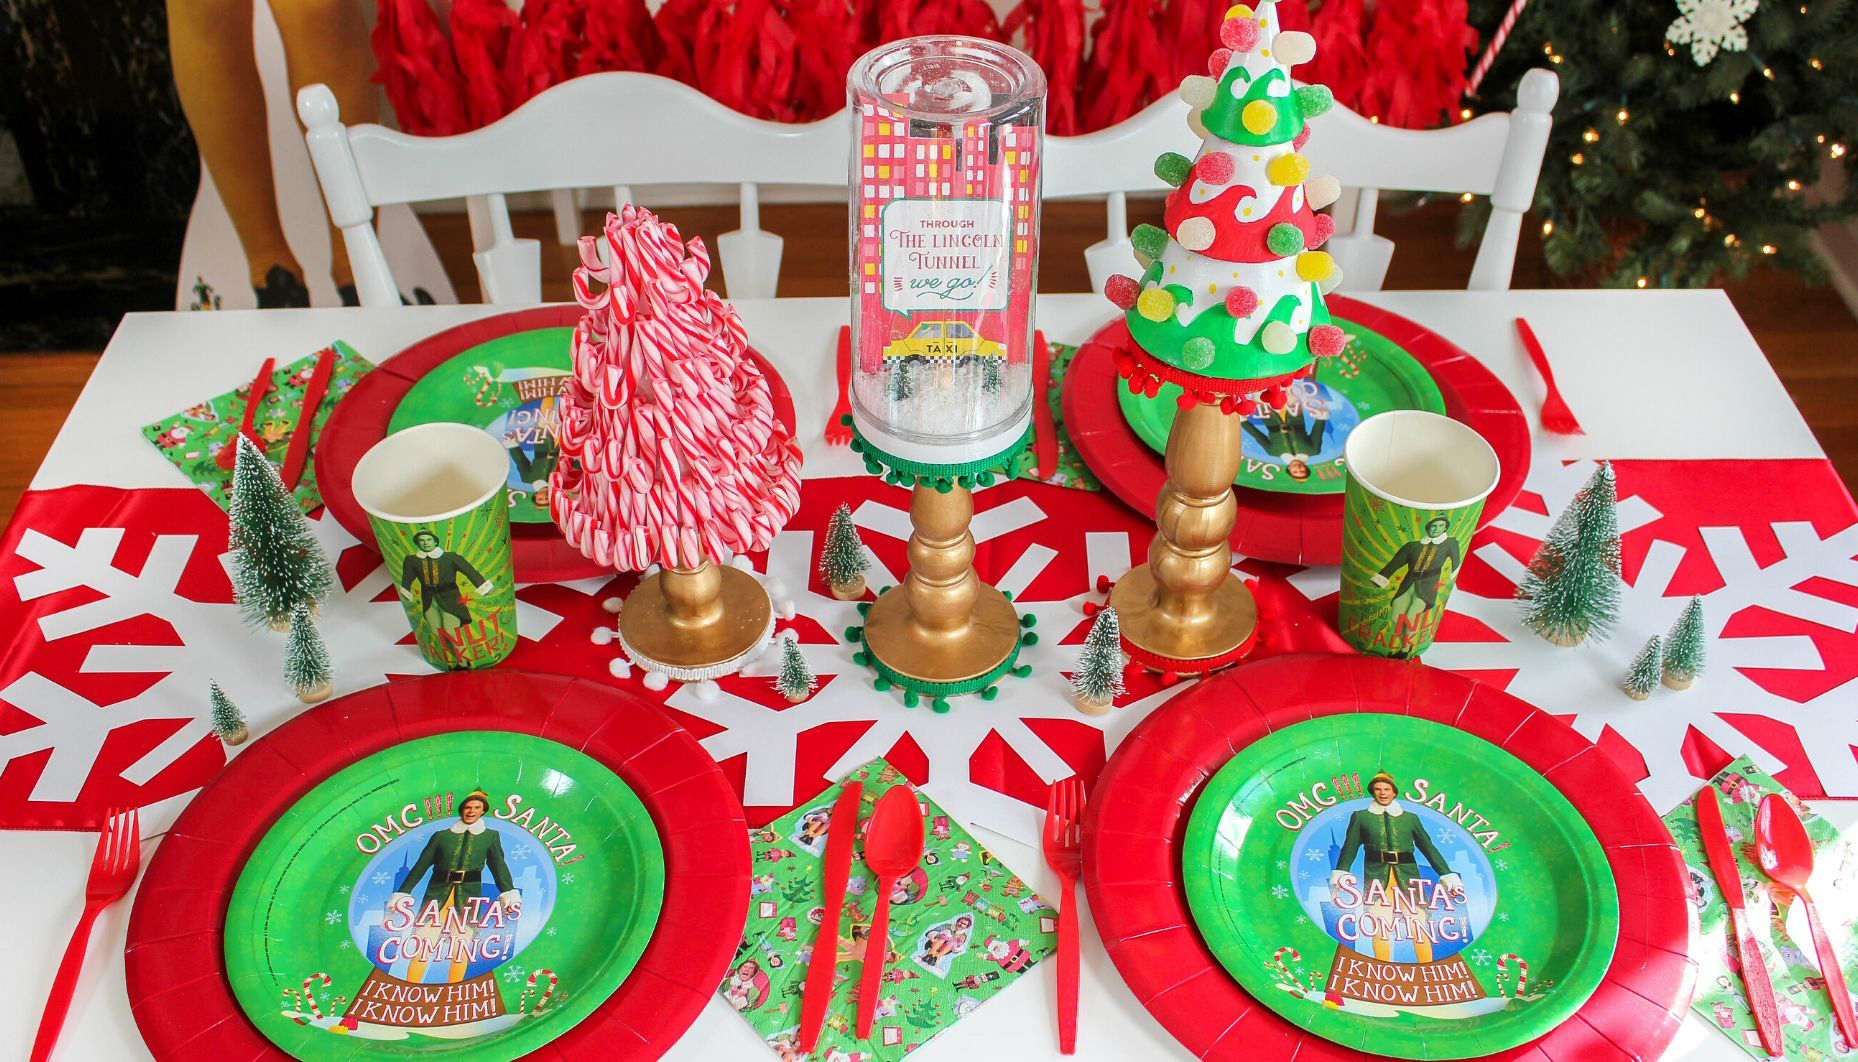 Elf Movie Night Christmas Party, Elf, Elf movie night, let's take an elfie, Buddy the Elf, Elf party ideas, Christmas party, Just Add Confetti, free printables, sign loud for all to hear, elf 4 main food groups, spaghetti cake, snow ball fight, Christmas elf, Elf centerpiece, mug printables